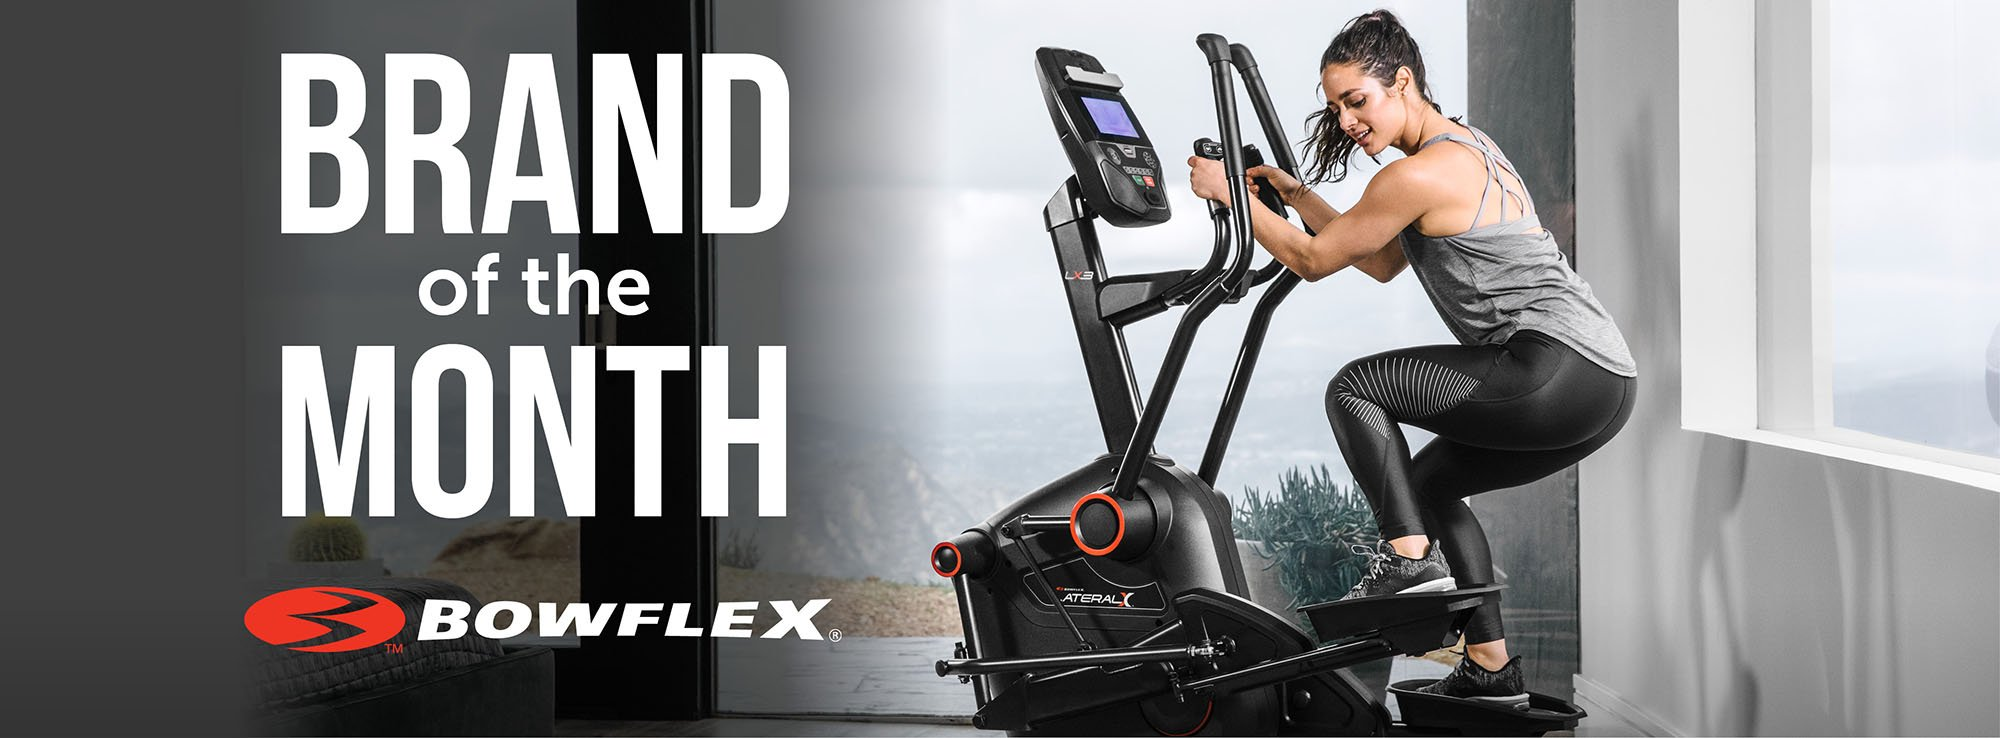 Brand of the Month: Bowflex